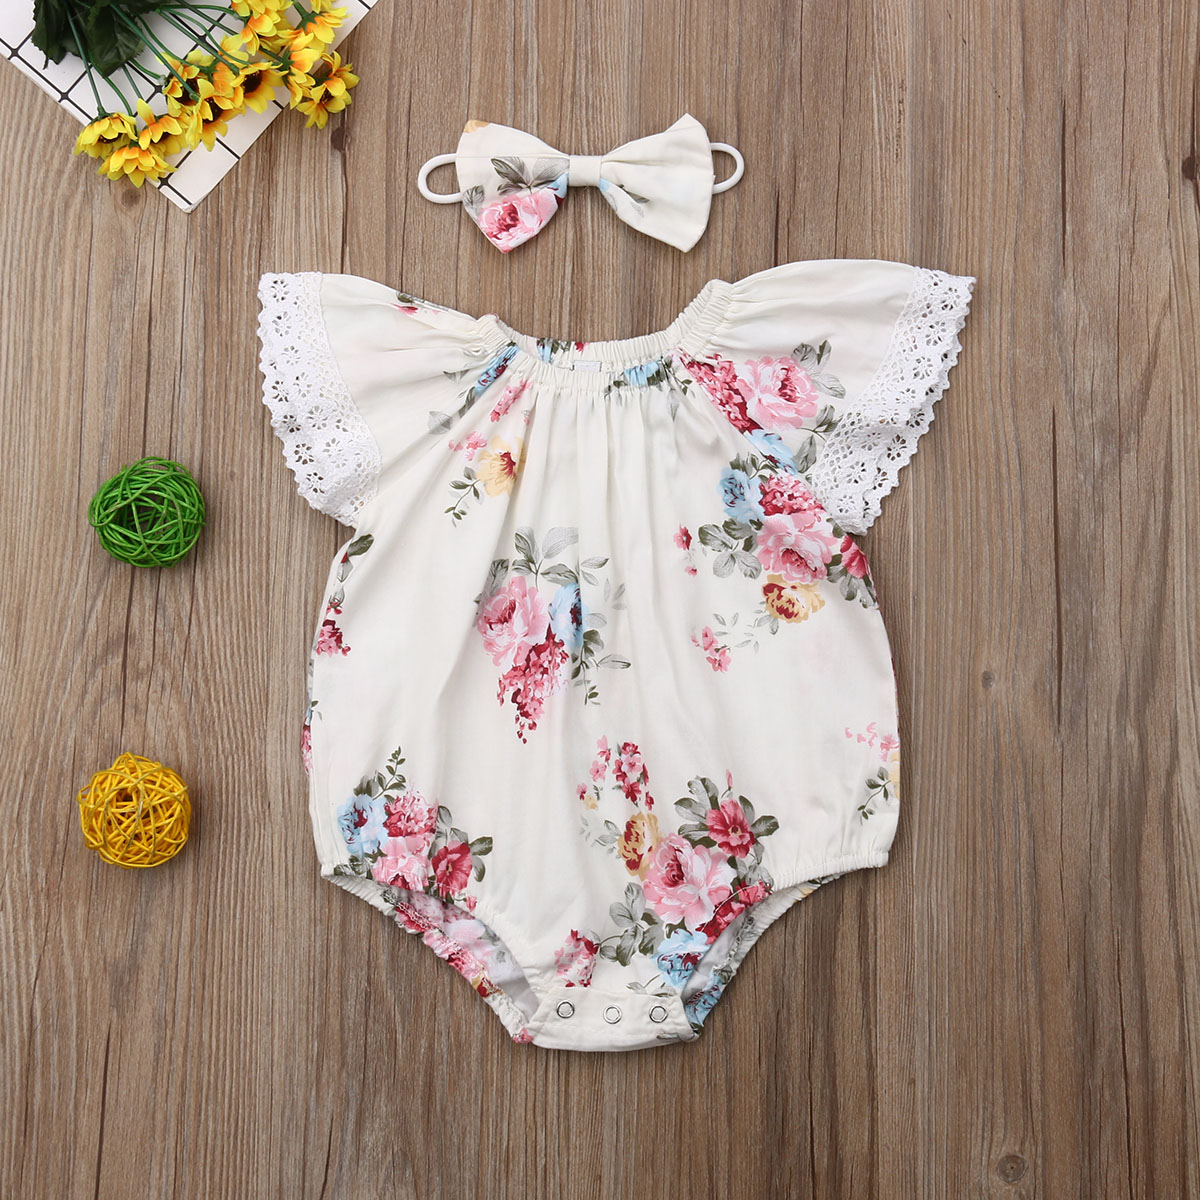 Emmababy 2019 Newest Newborn Baby Girl Clothes Sleeveless Flower Print Lace Ruffle Romper Headband 2Pcs Outfits Summer Clothes